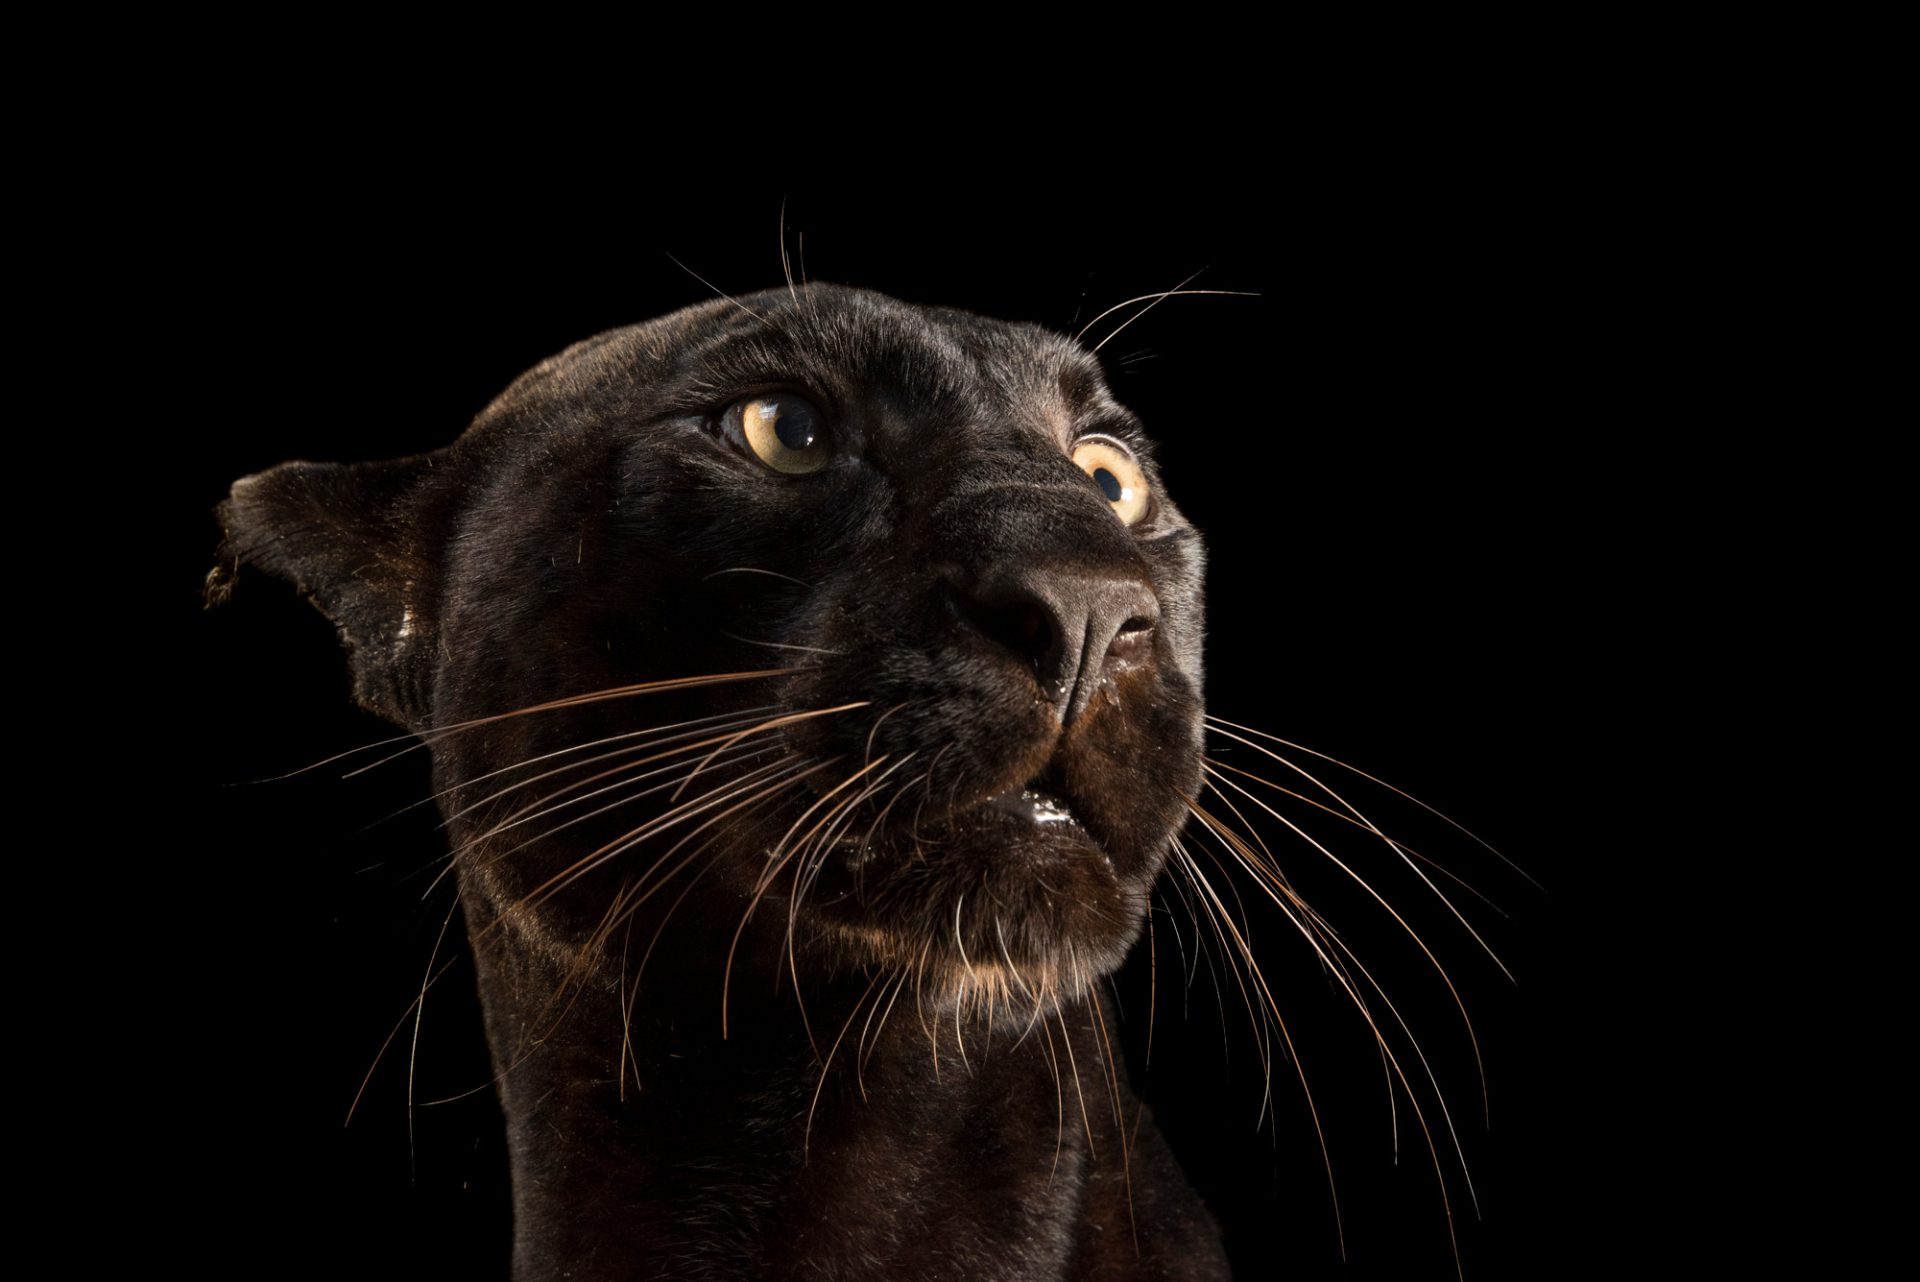 Photo: Black phase Indochinese leopard (Panthera pardus delacouri) at Zoo Taiping.